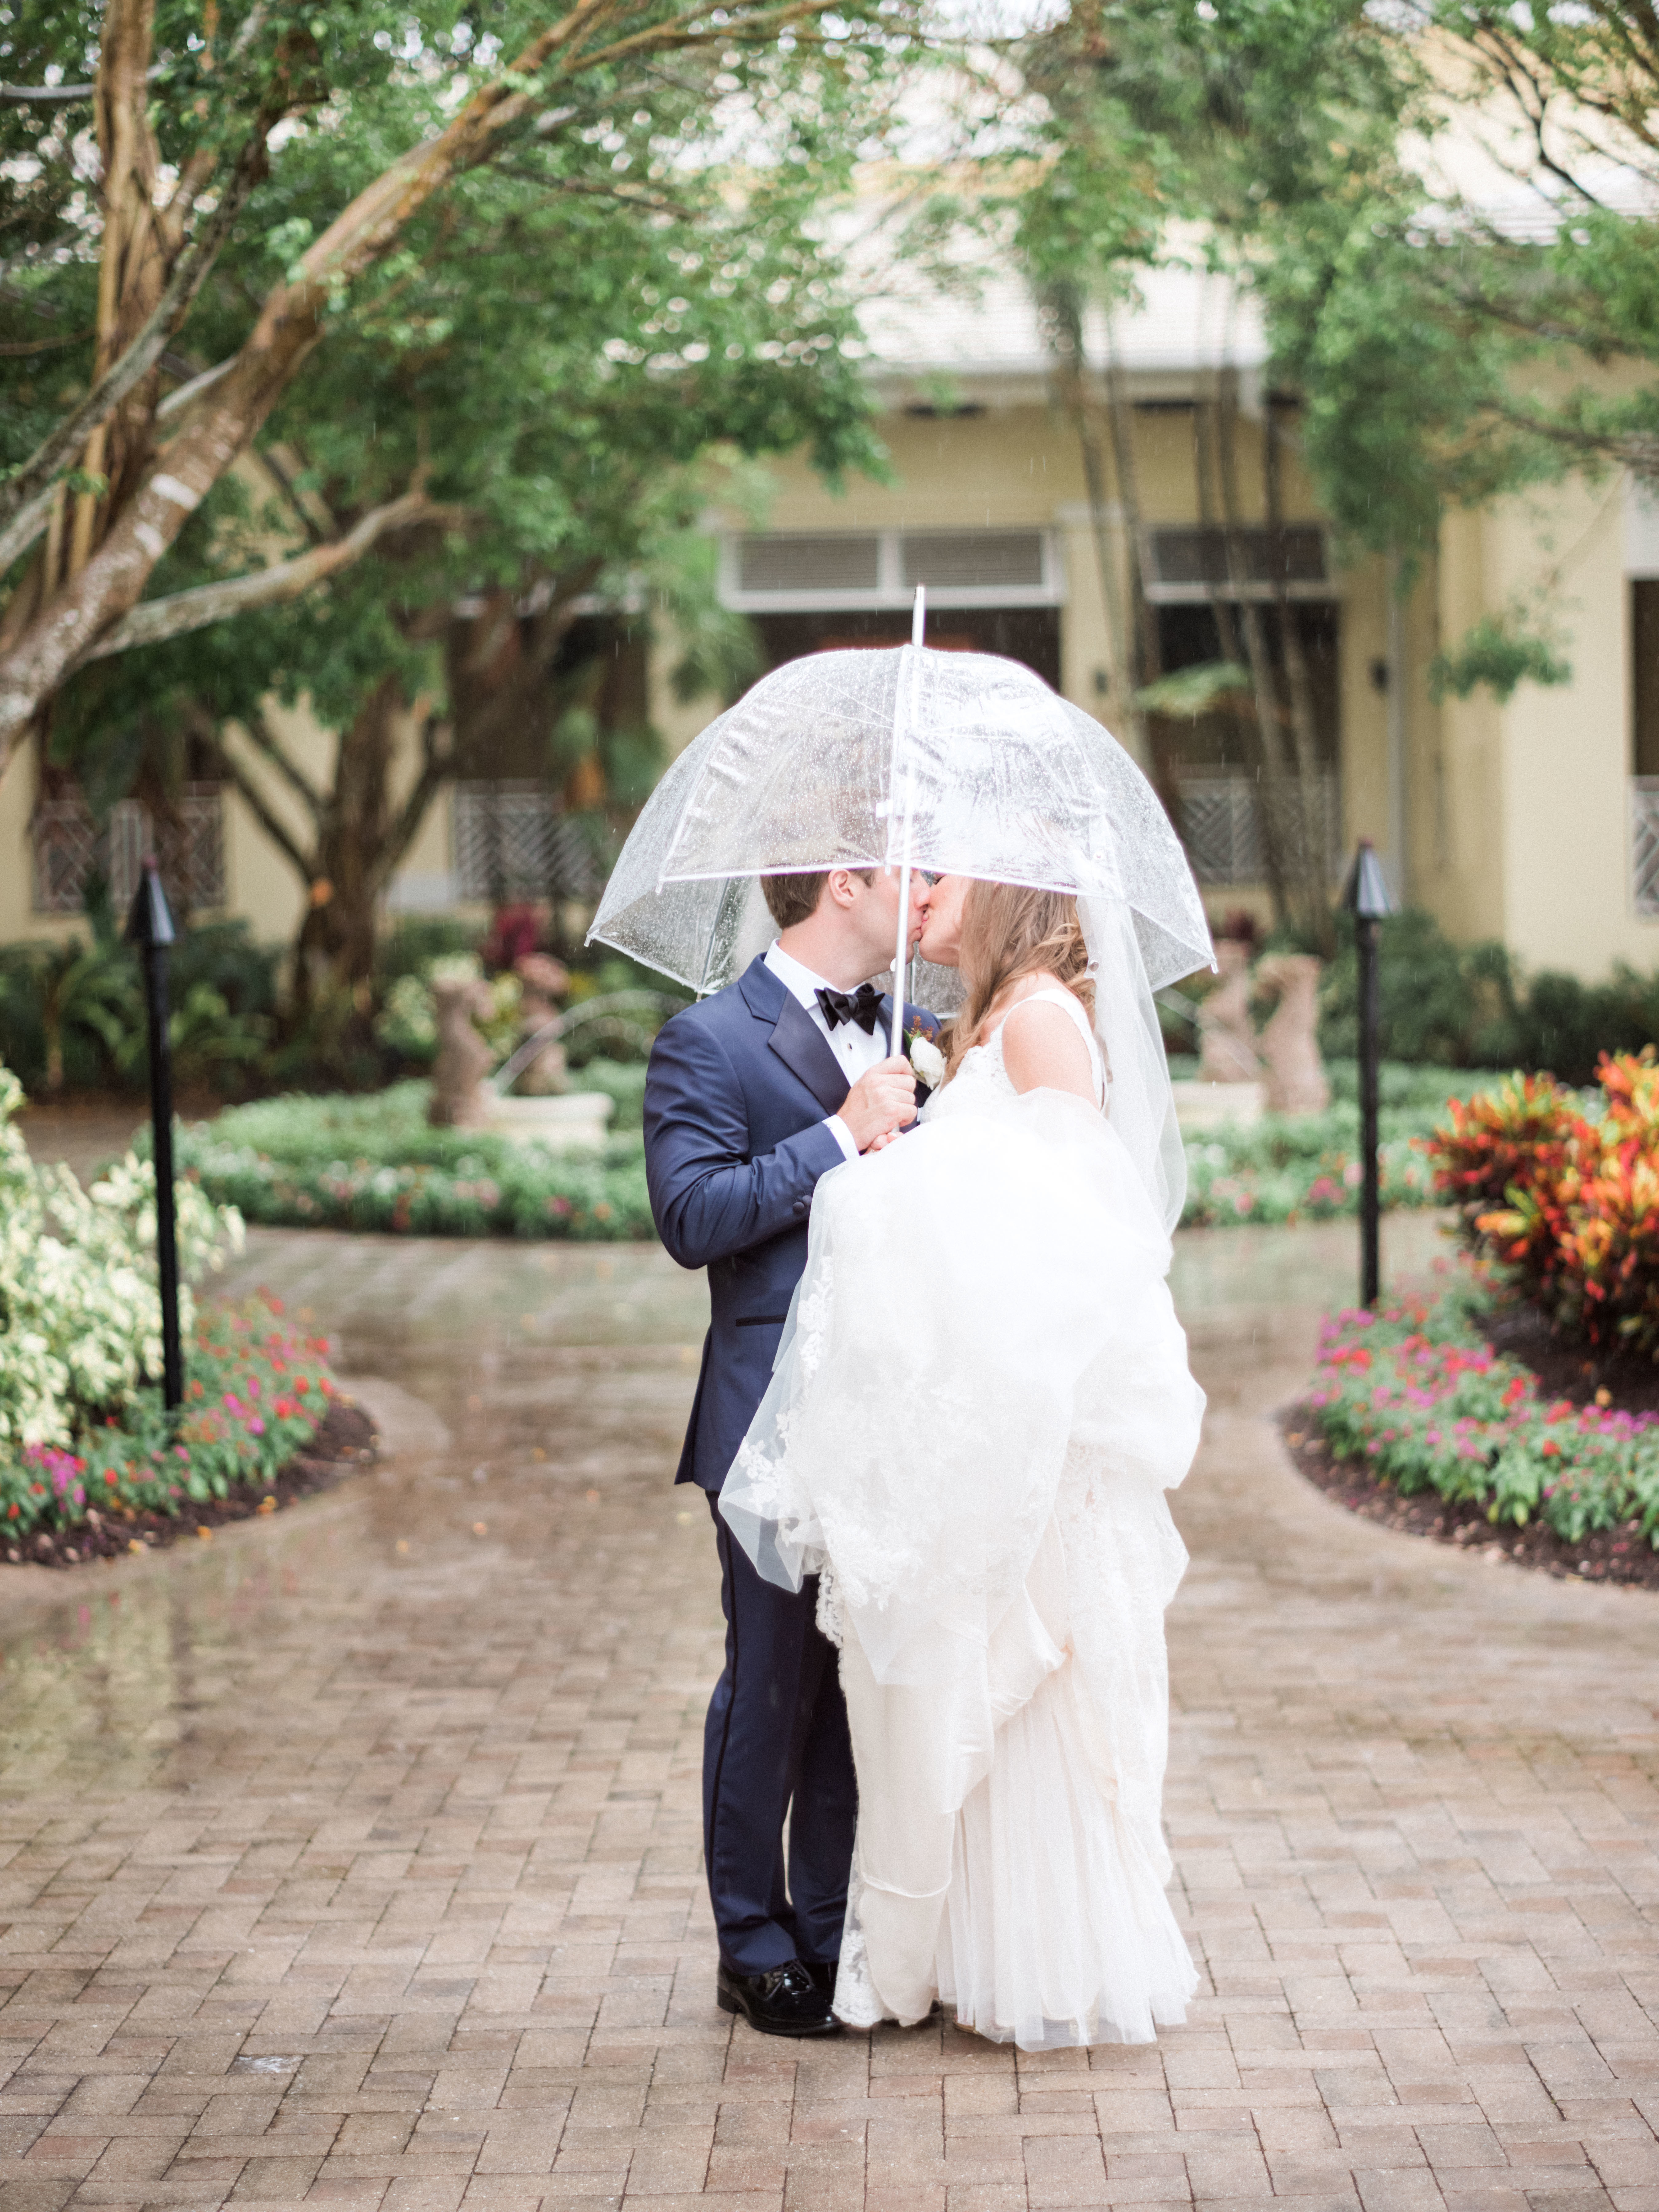 Along-came-stephanie-wedding-destination-planner-luxury-international-florida-naples-sarasota-italy-colorado-atlanta-hyatt-09